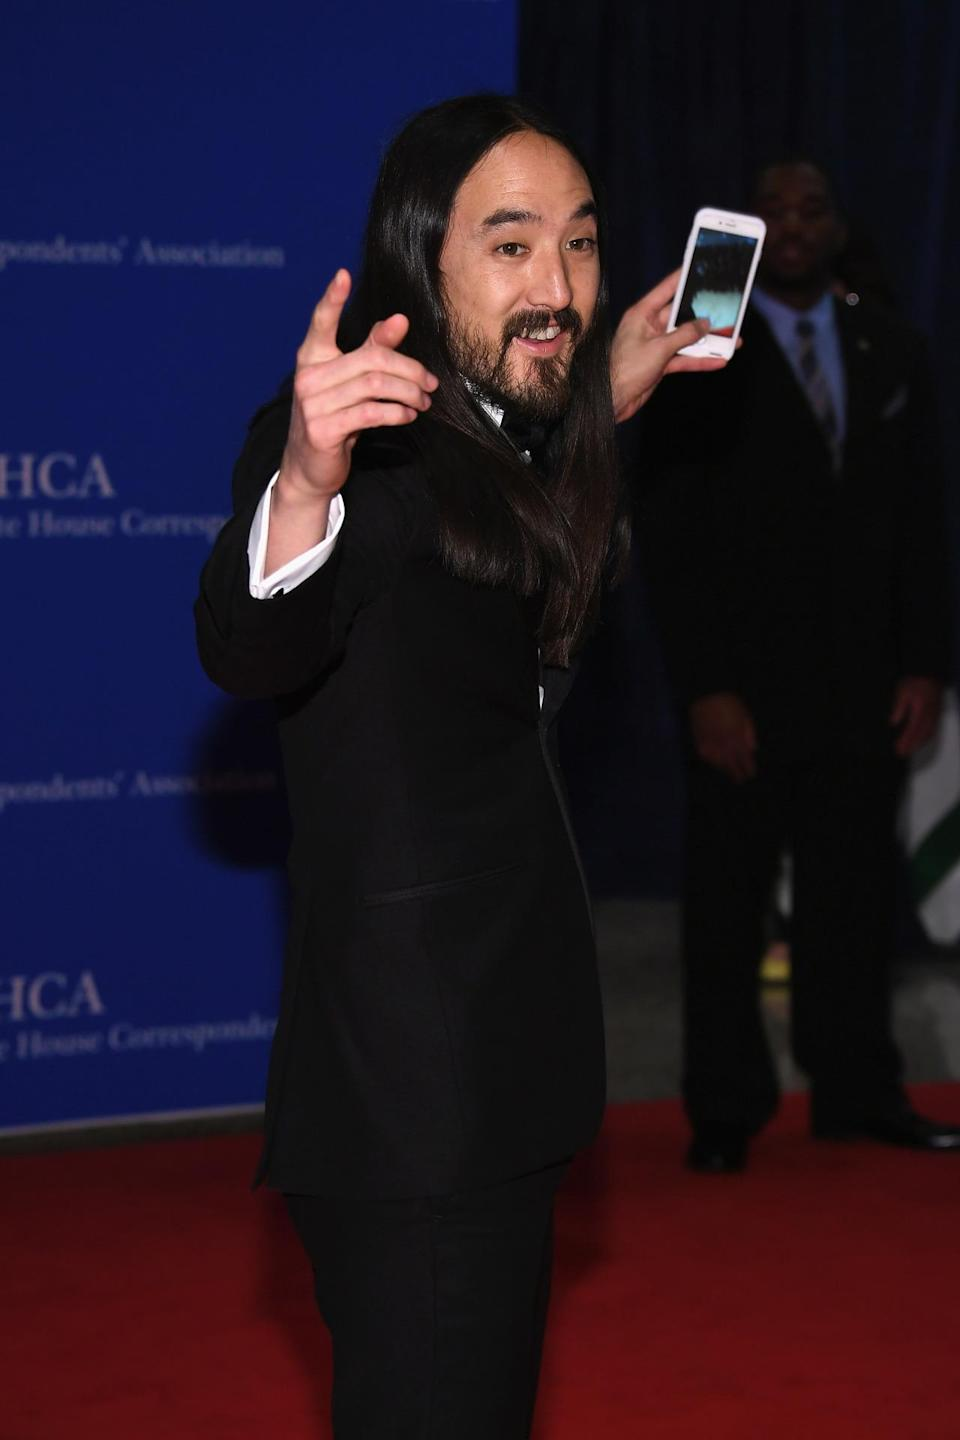 <p>DJ Steve Aoki attends the 102nd White House Correspondents' Dinner, April 30. <i>(Photo: Larry Busacca/Getty Images)</i></p>